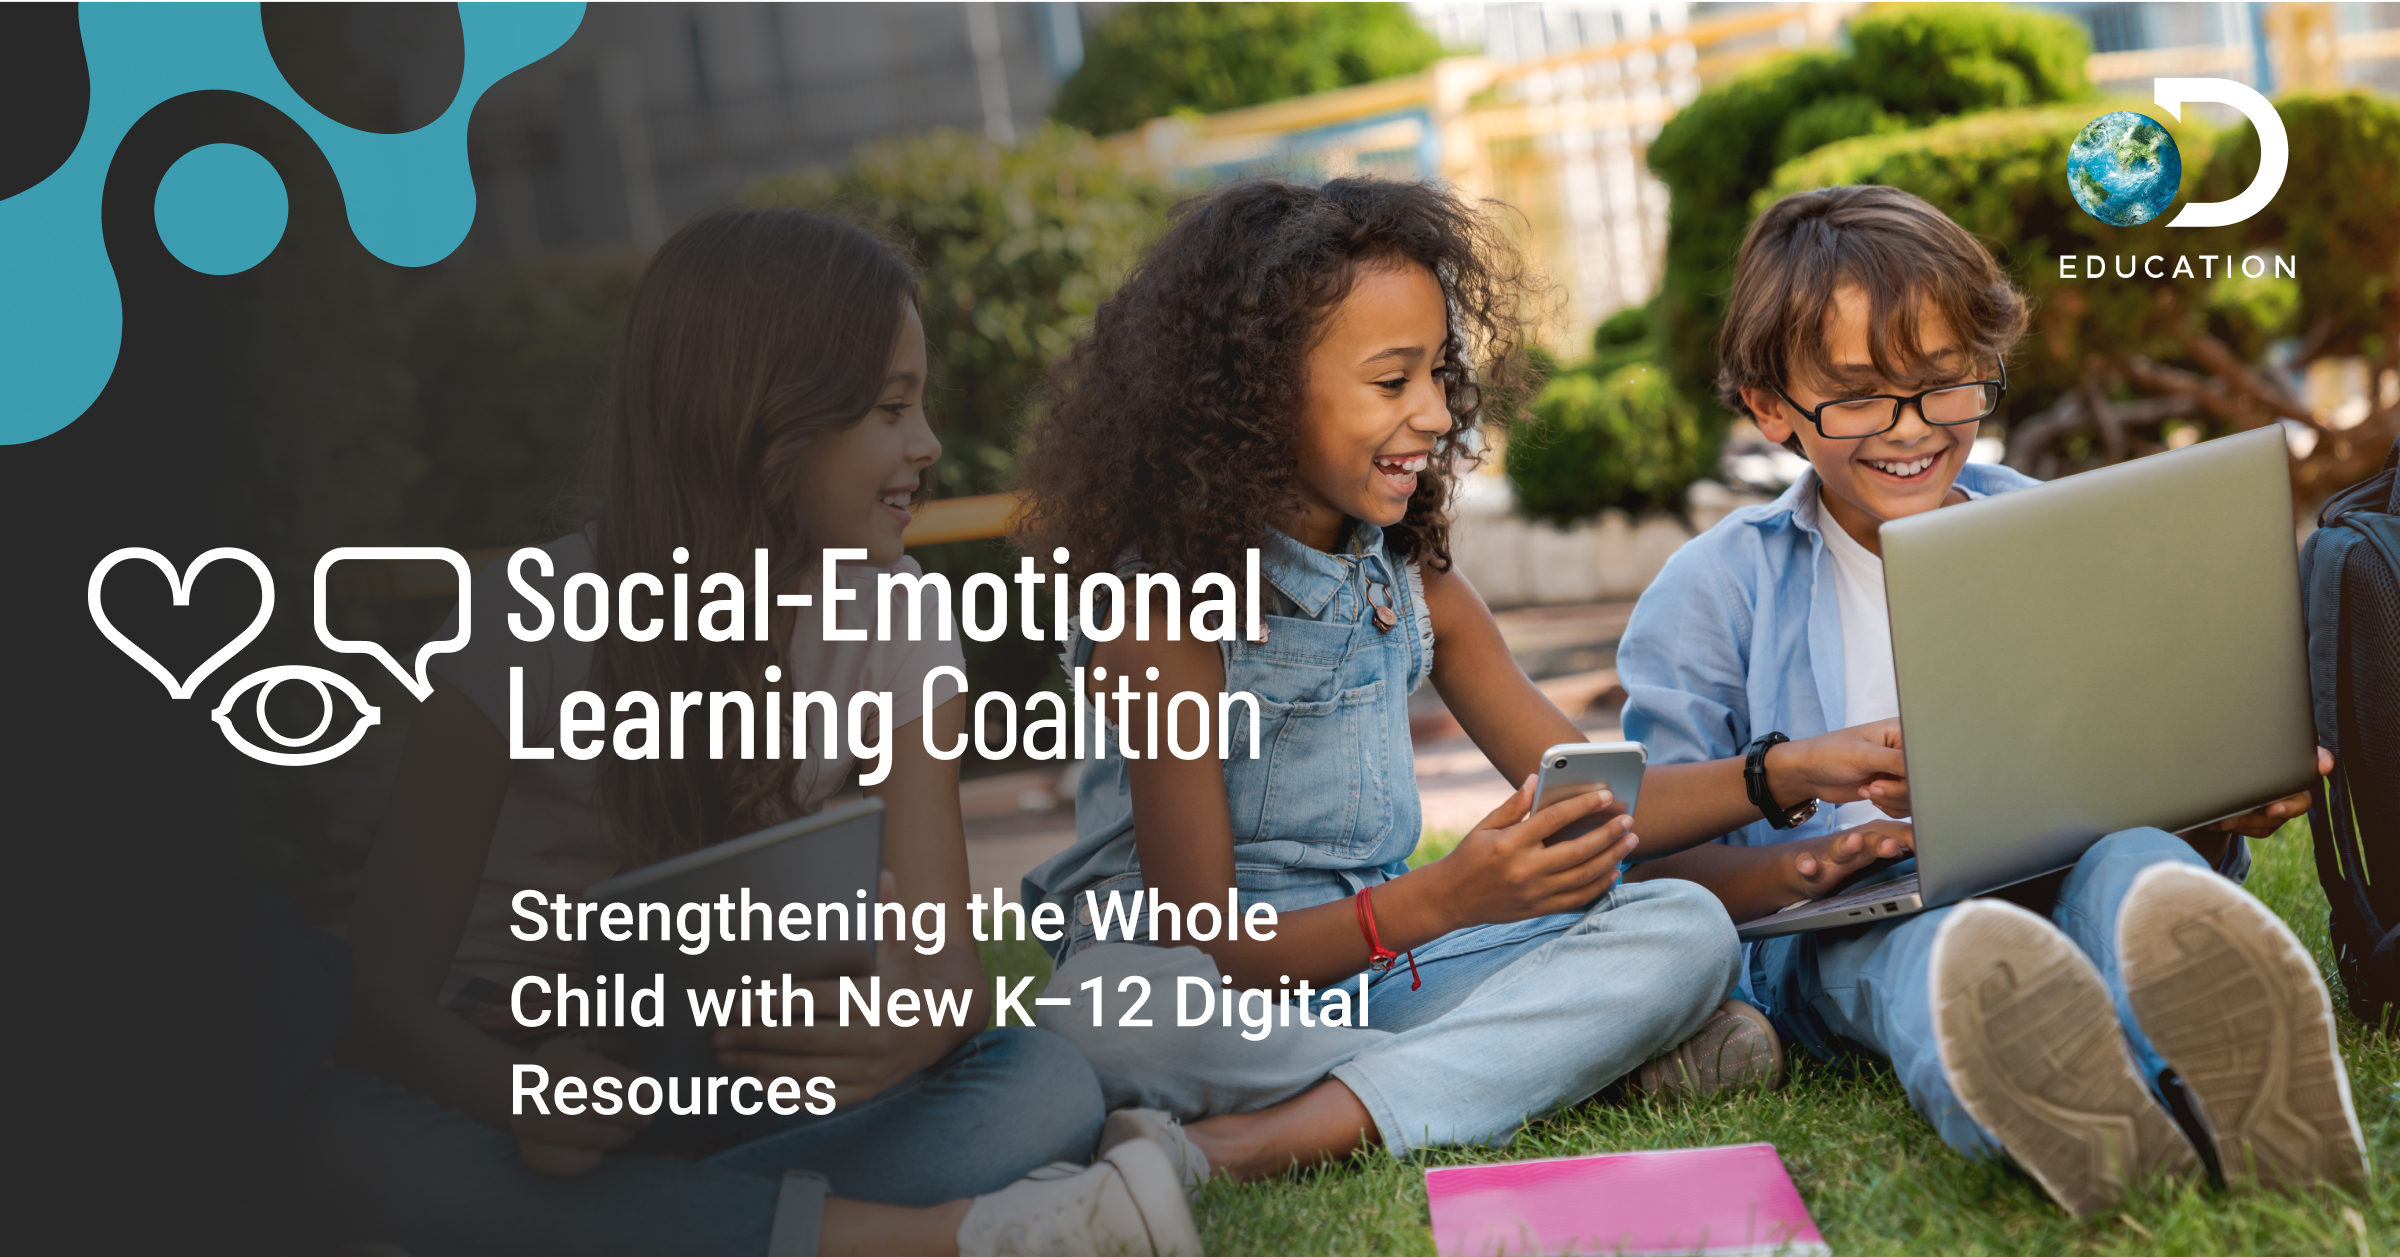 Discovery Education and Industry Leaders Launch Social-Emotional Learning Coalition to Address Critical Educator and Student Needs with No-Cost Resources